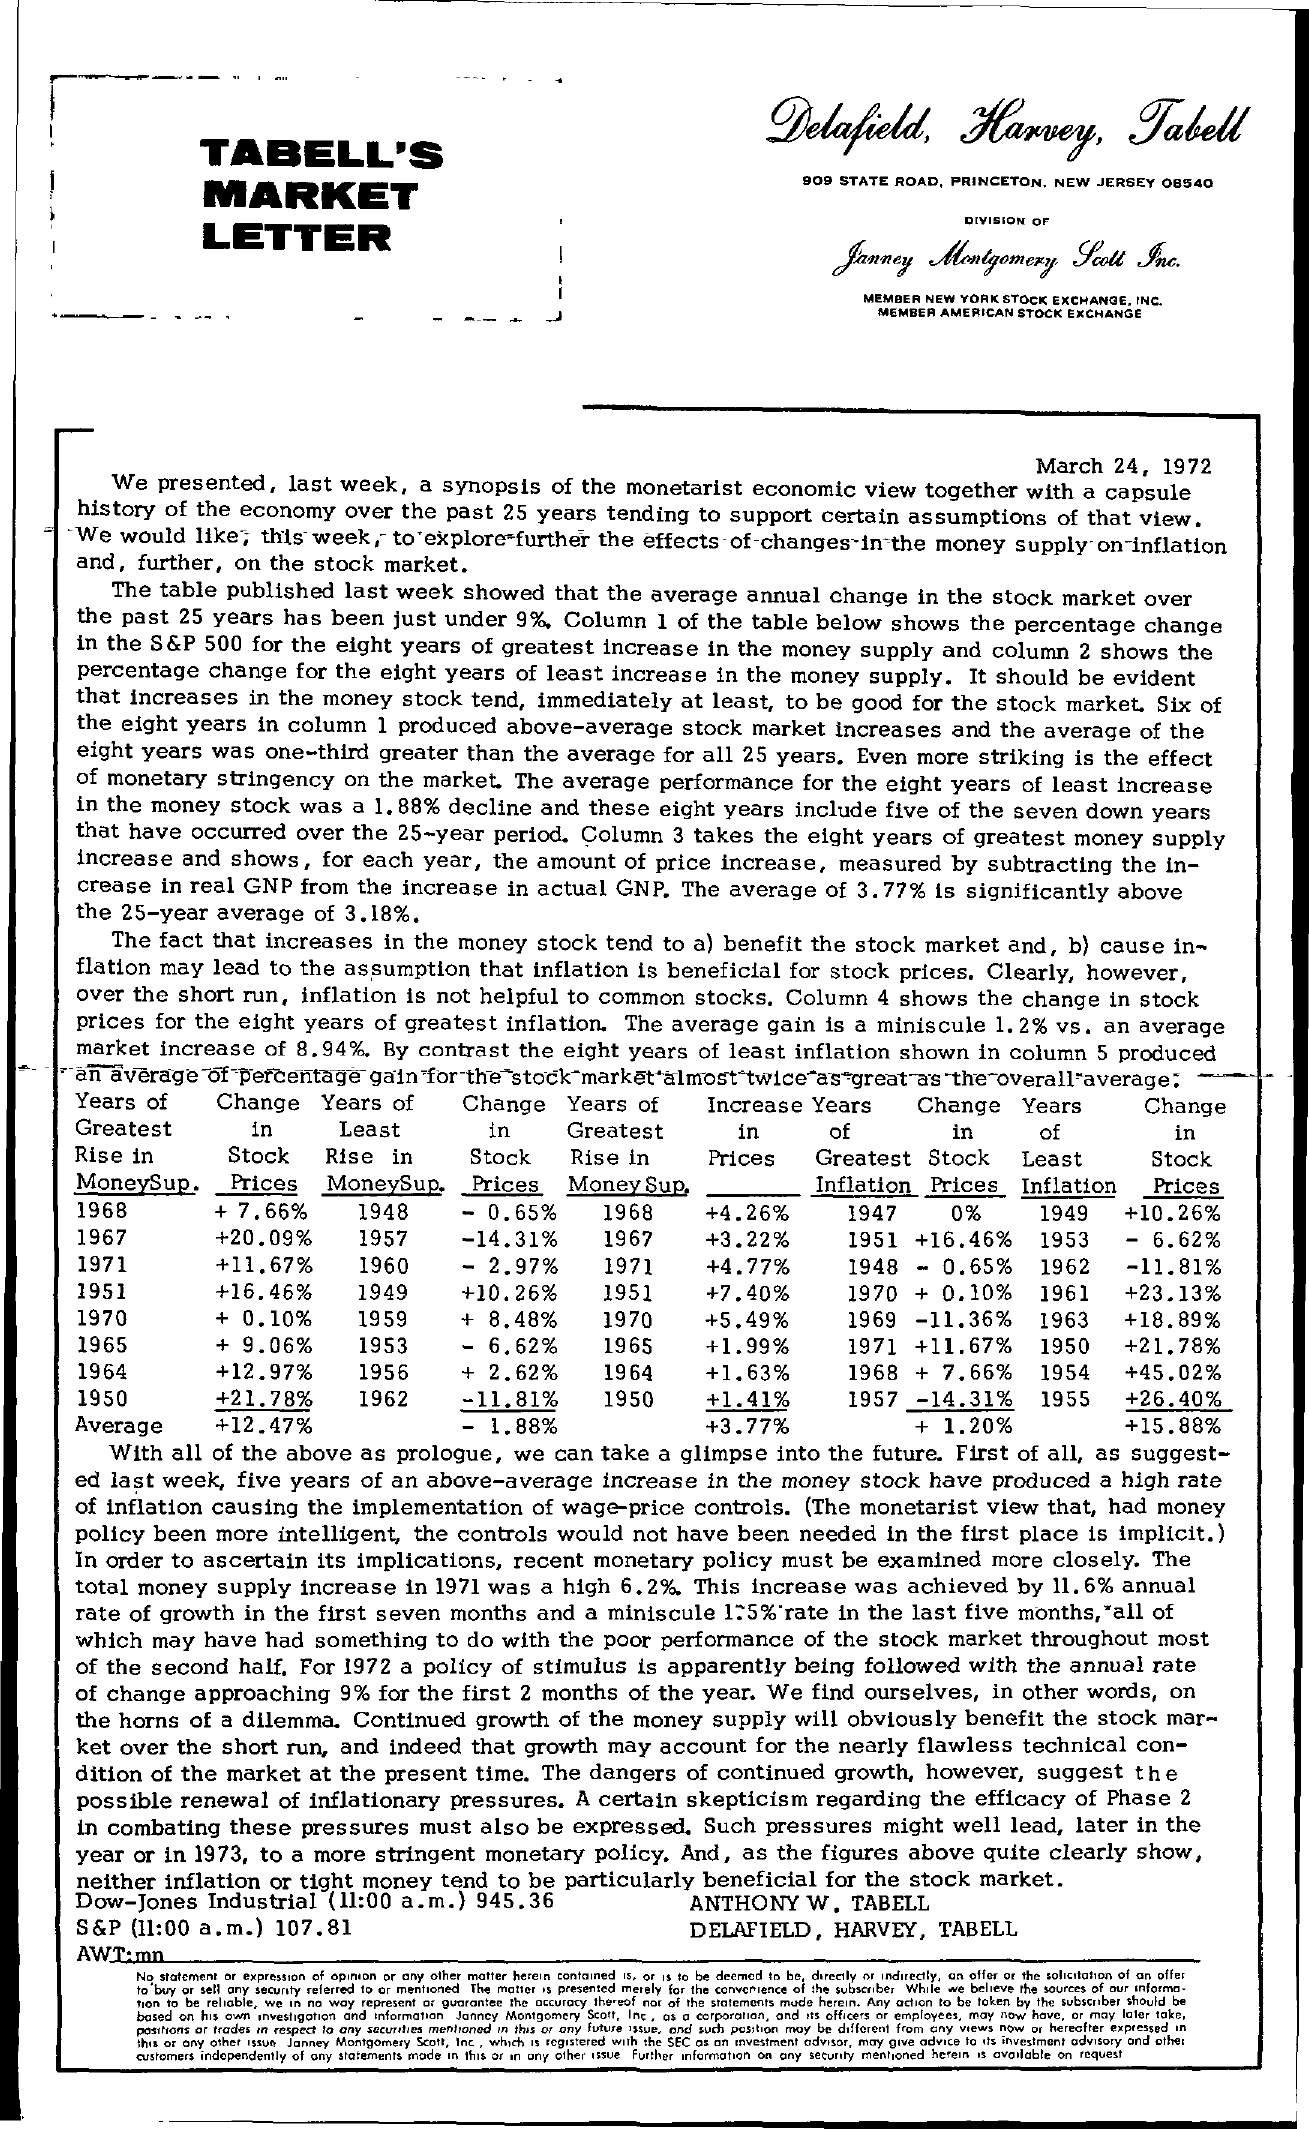 Tabell's Market Letter - March 24, 1972